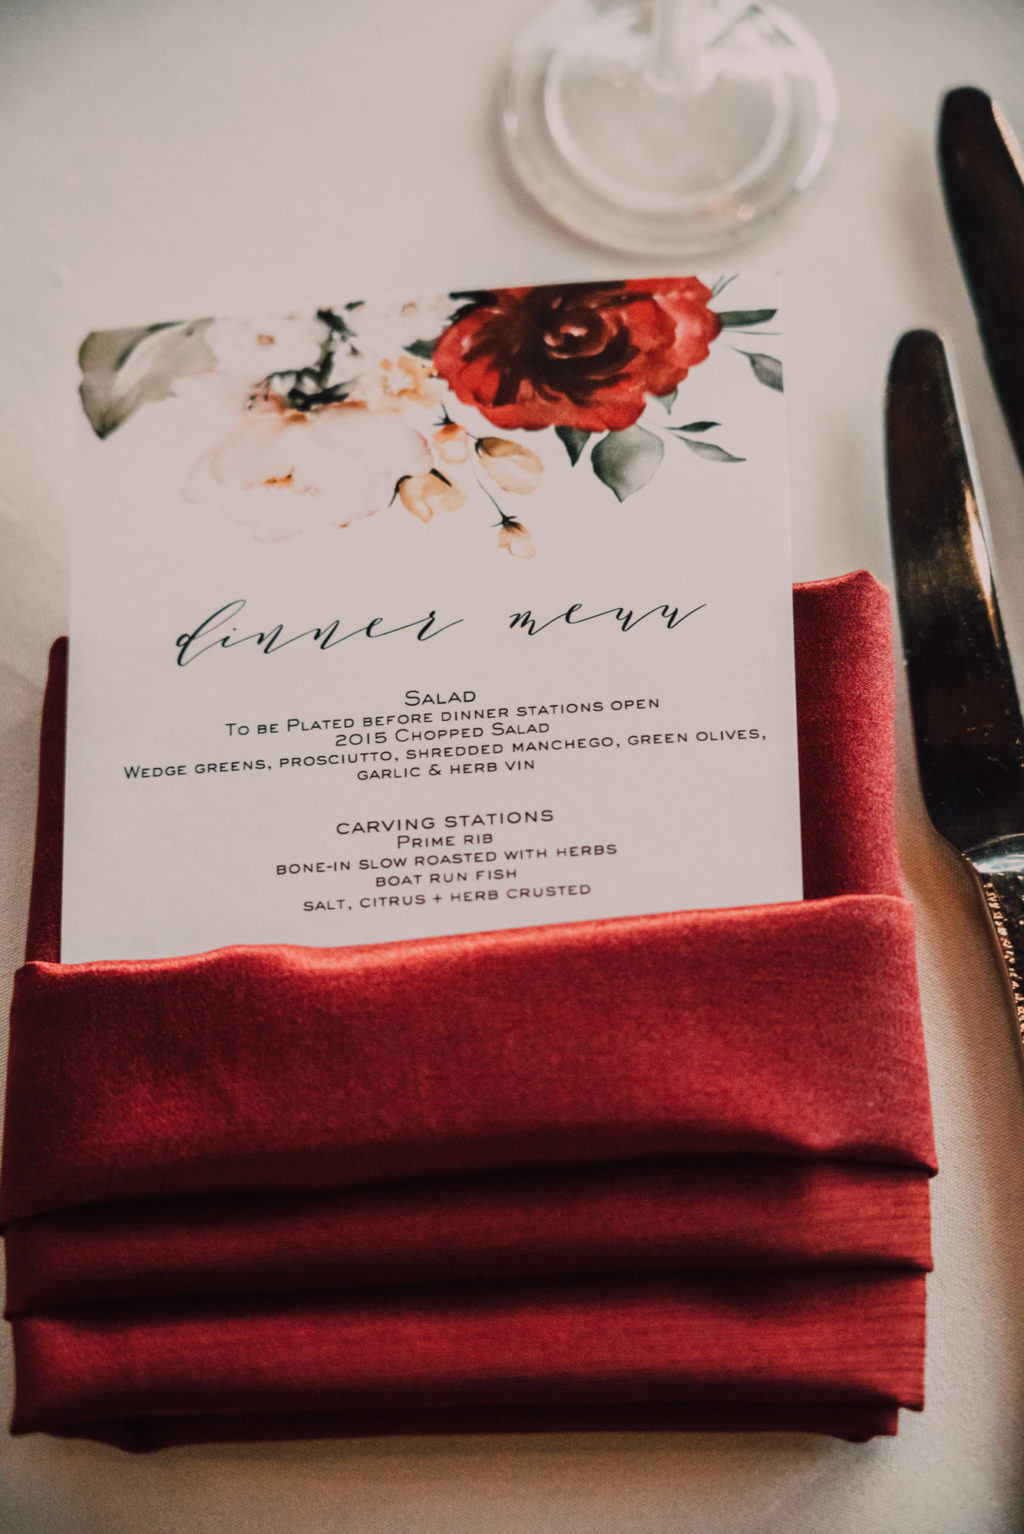 Tampa Wedding Reception Dinner Menu Card in Burgundy Napkins with Watercolor Floral Motif